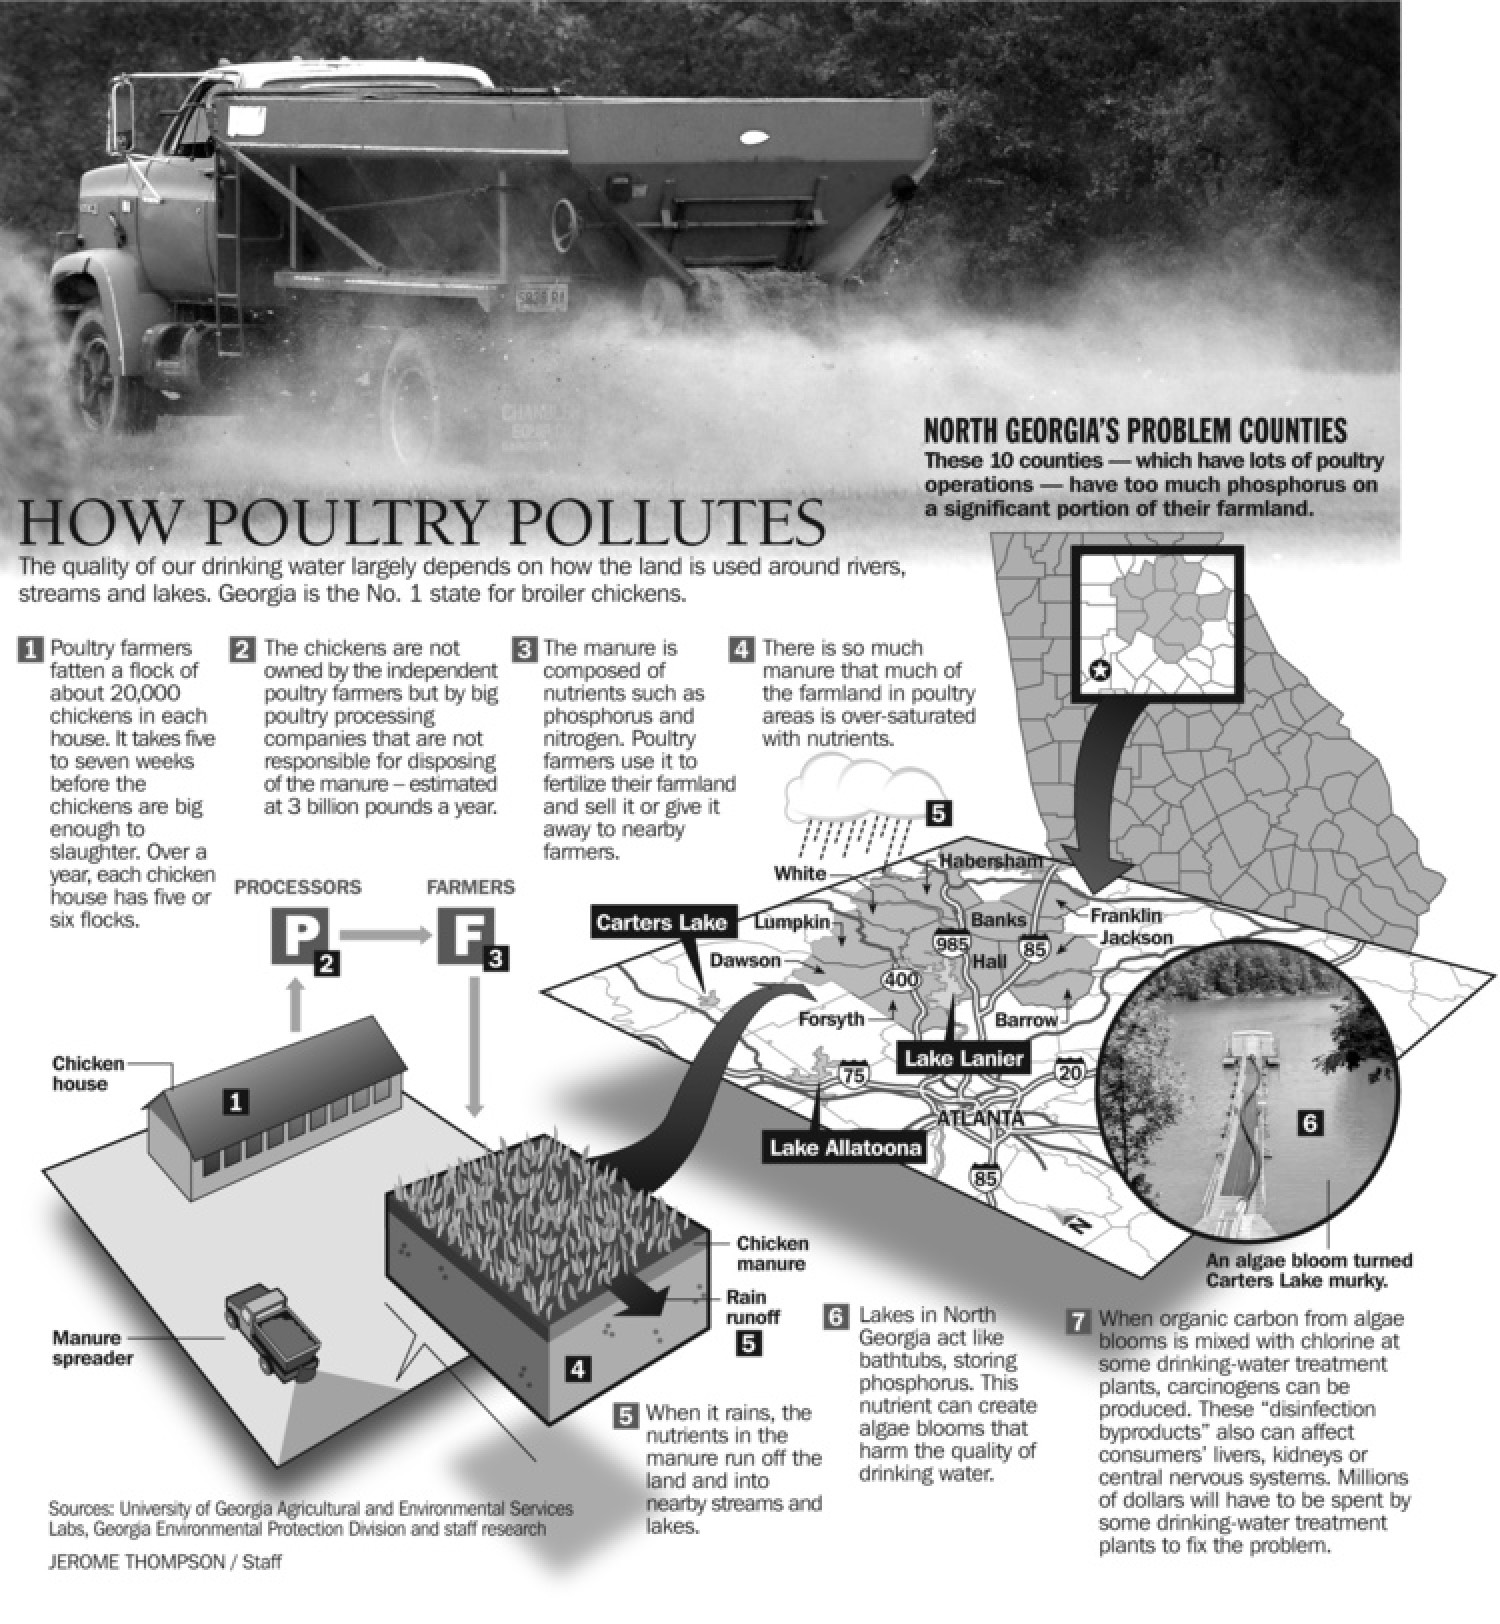 How Poultry Pollutes Infographic